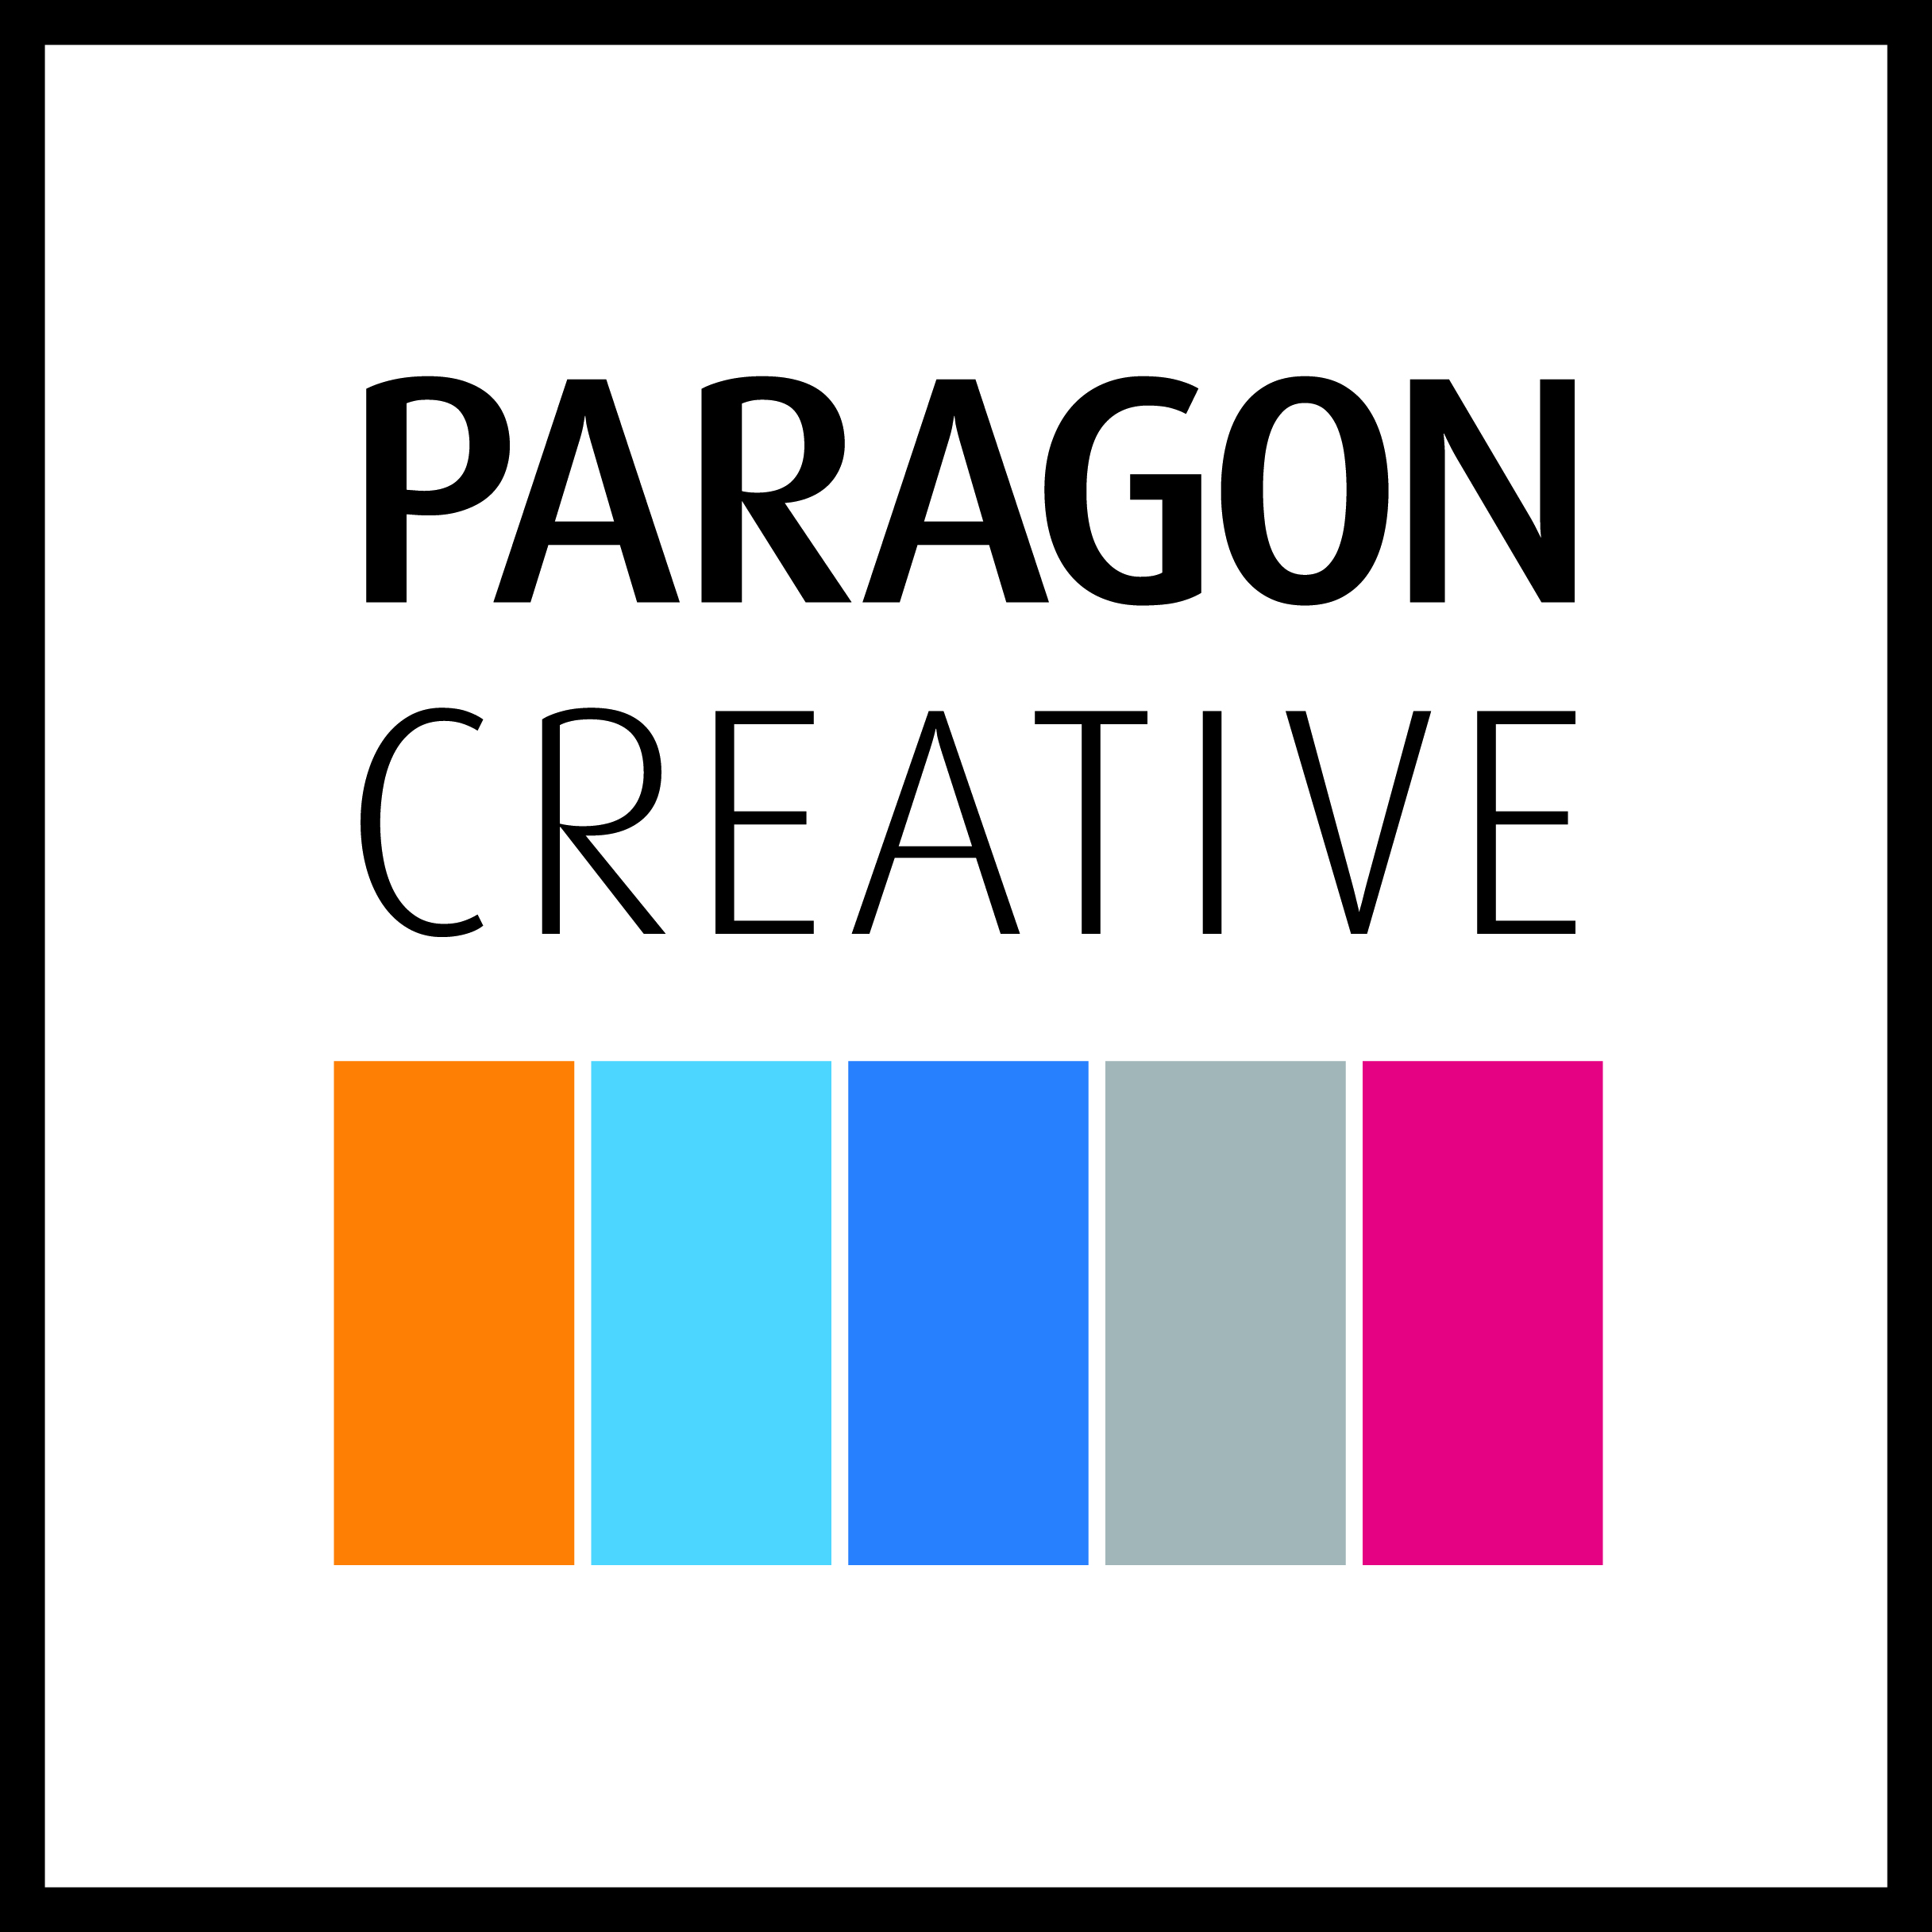 Paragon Creative Ltd